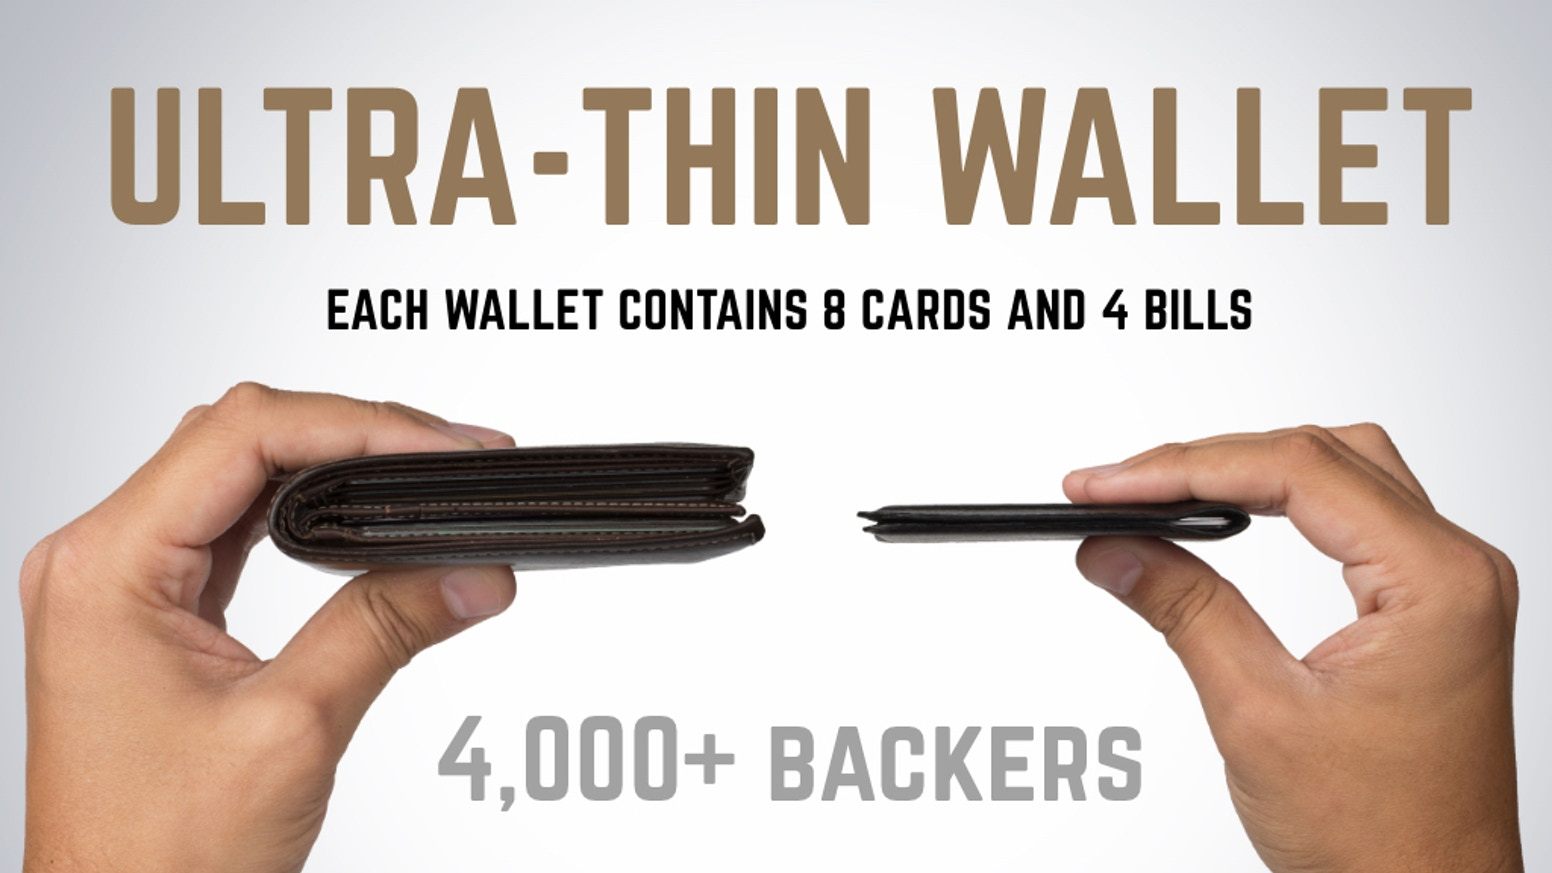 15x stronger than steel, as thin as a razor, holds 8 cards and cash, RFID protection - this is the ultimate wallet.